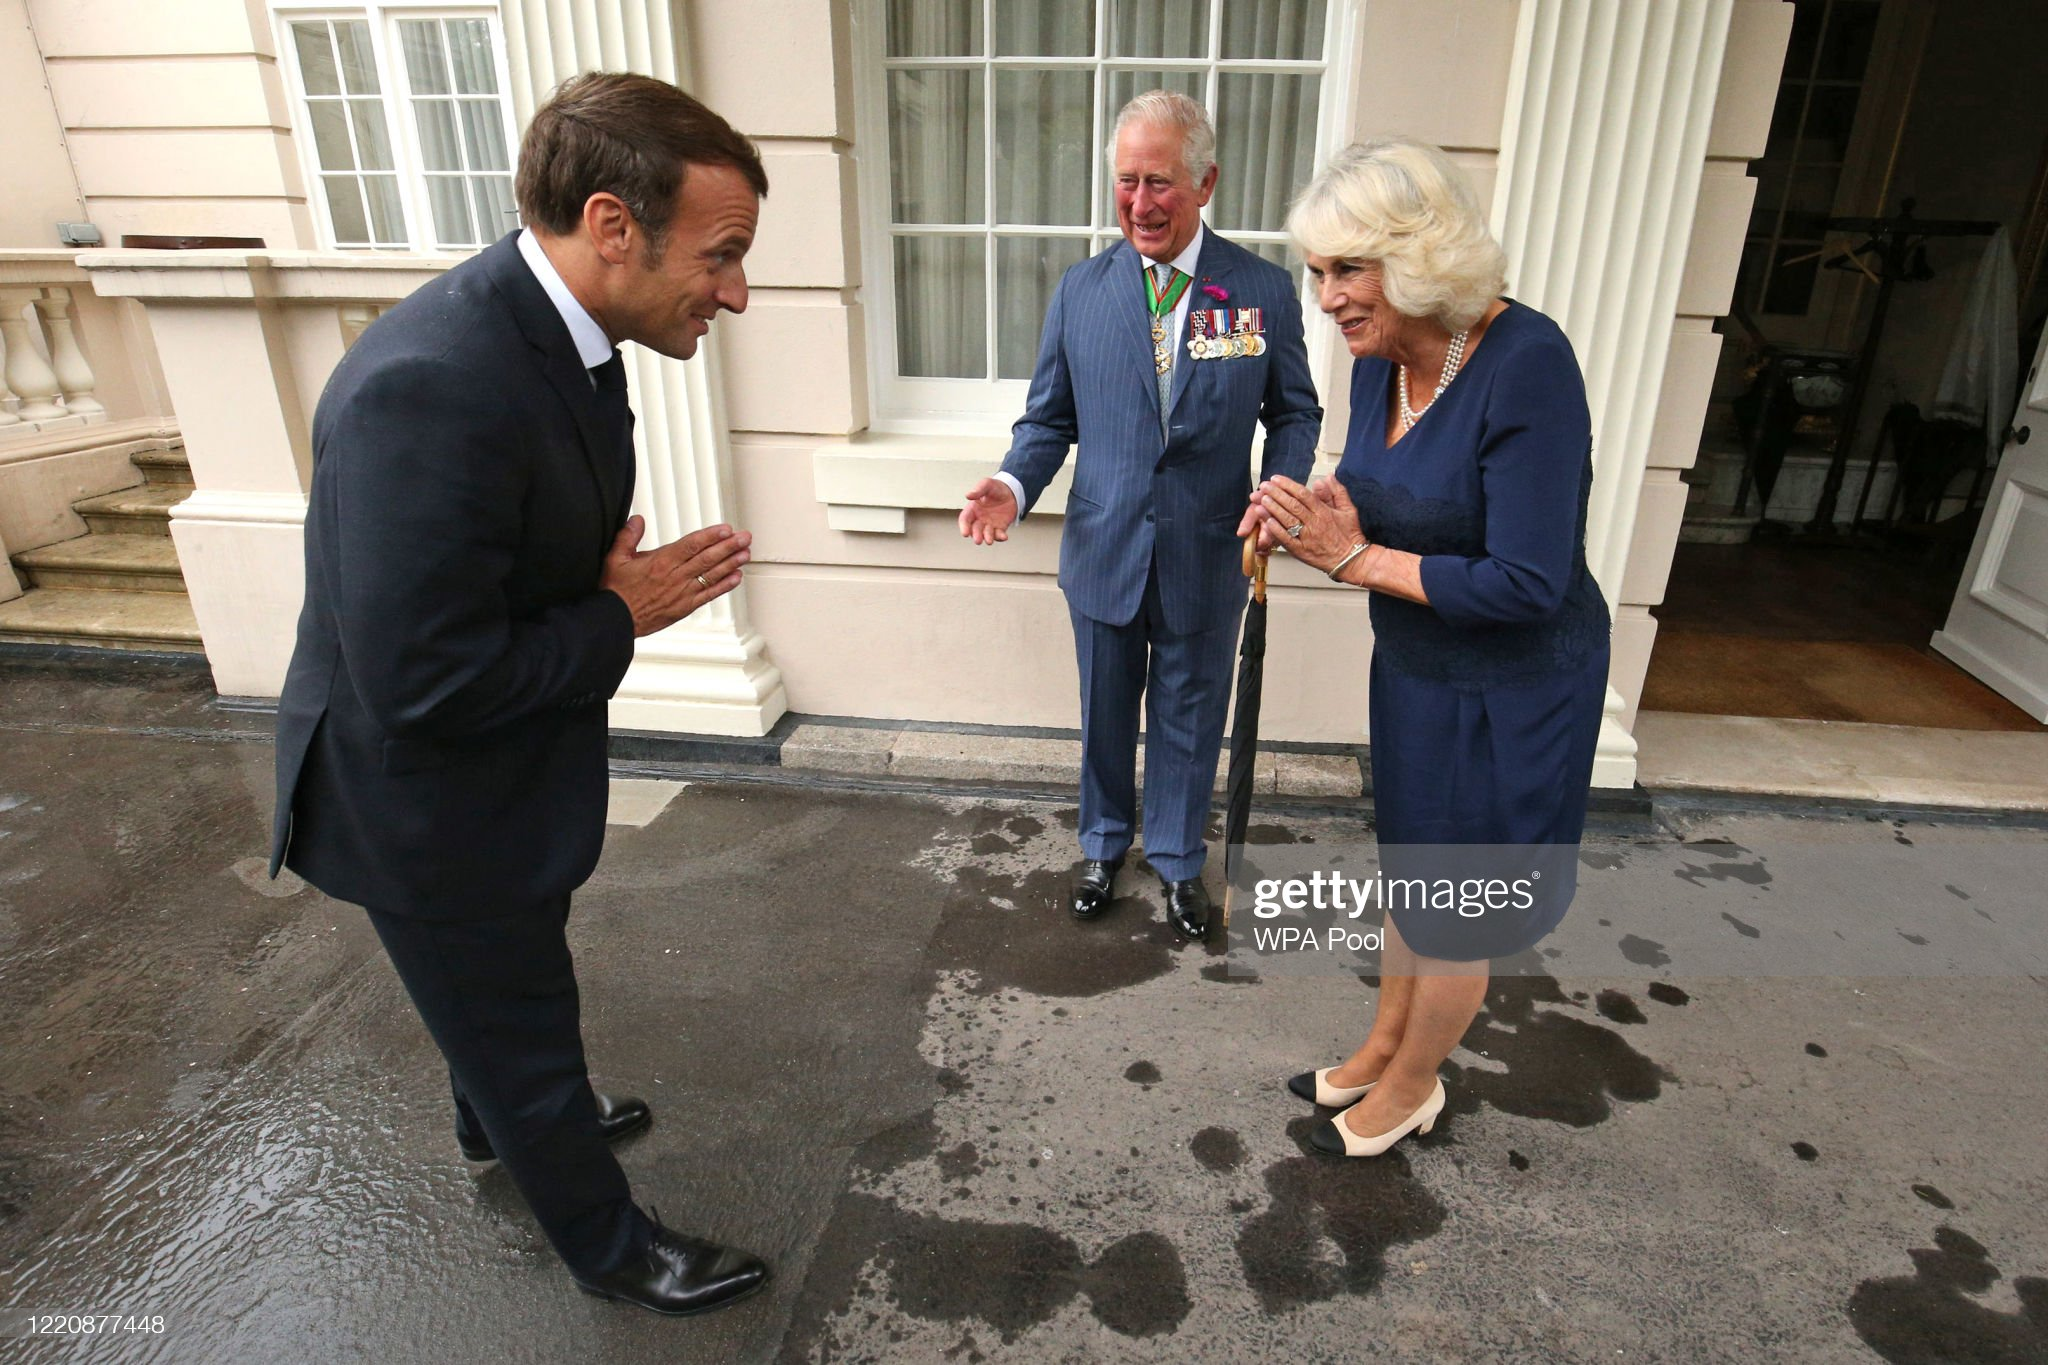 prince-charles-prince-of-wales-and-camilla-duchess-of-cornwall-greet-picture-id1220877448